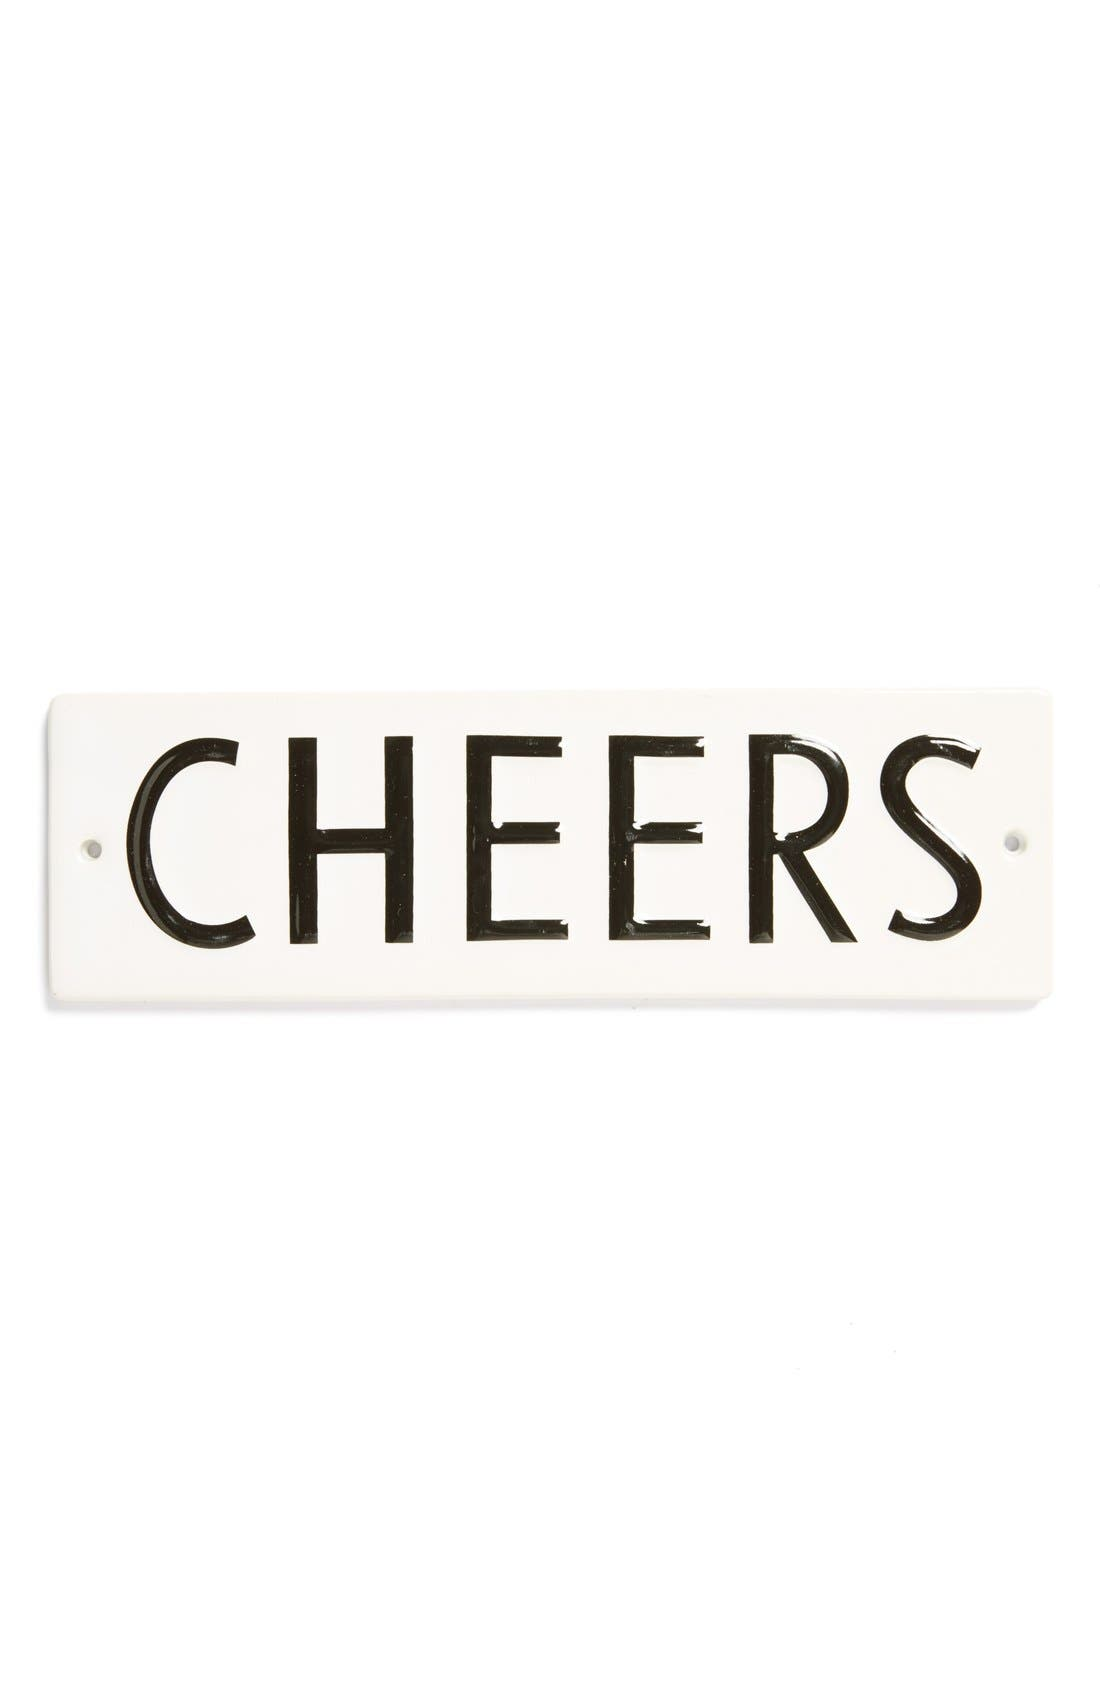 Main Image - Rosanna 'Cheers' Porcelain Wall Art